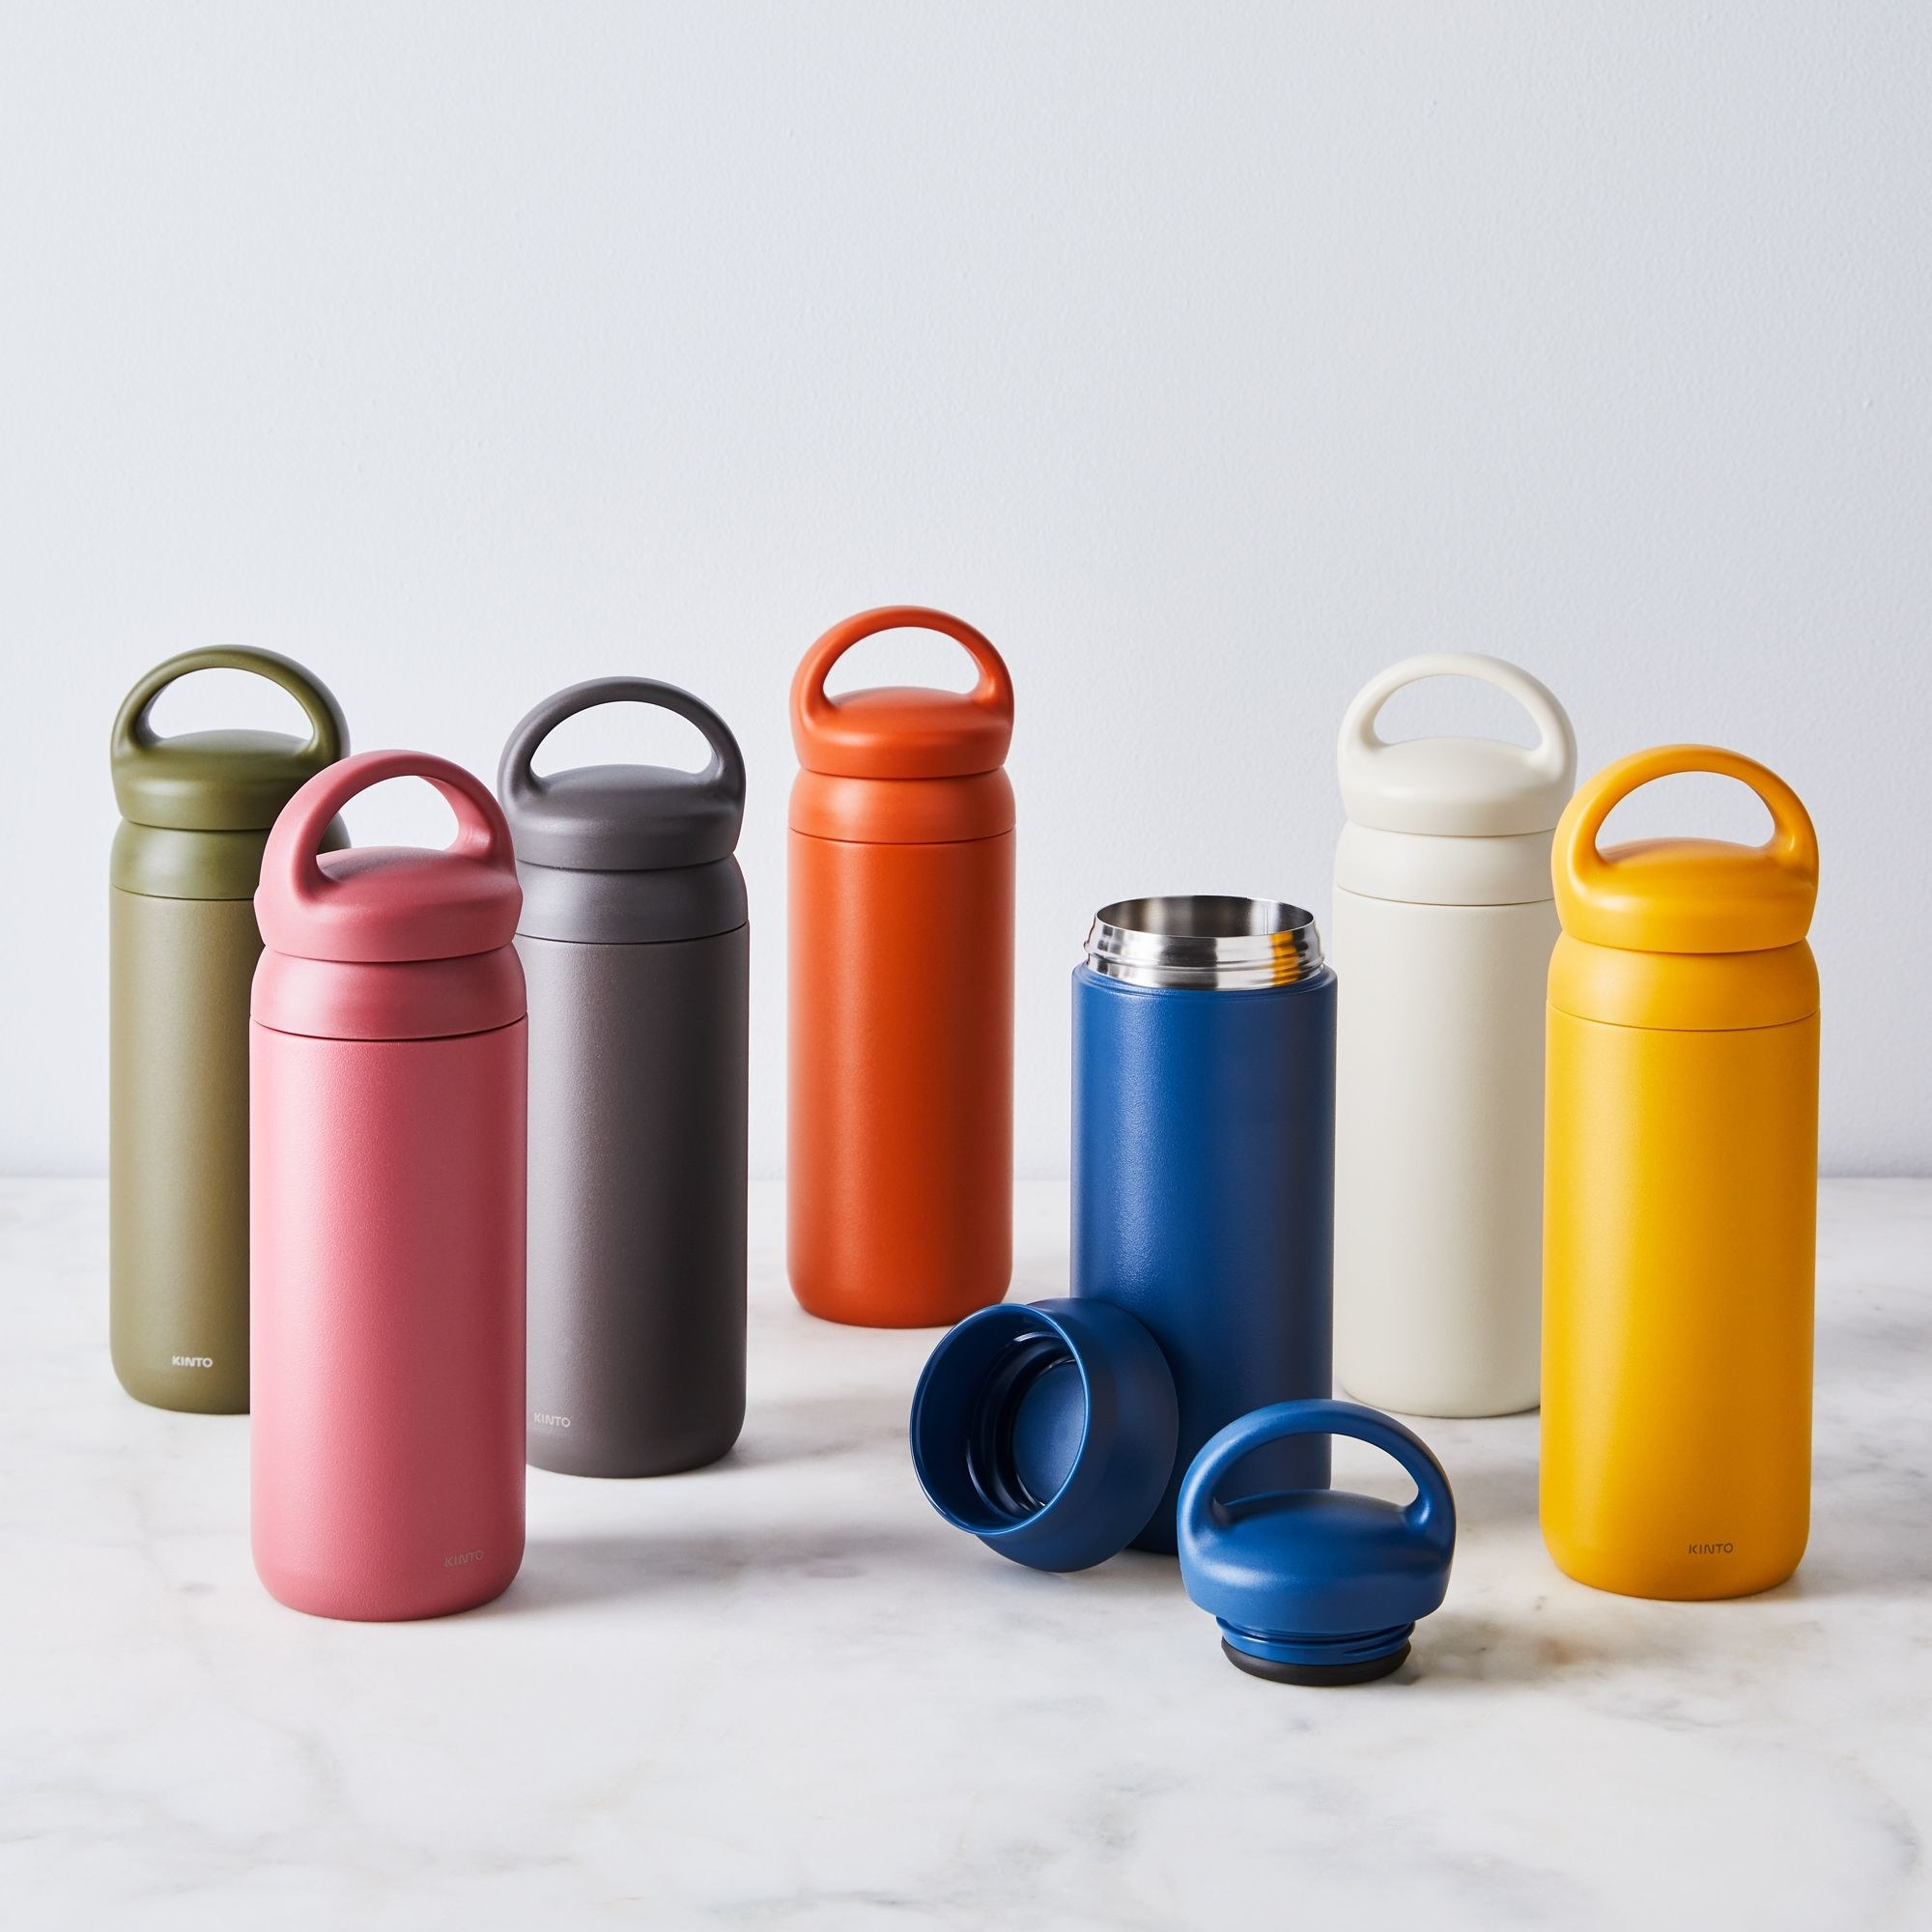 Seven travel tumblers in different colors standing upright on white marble surface